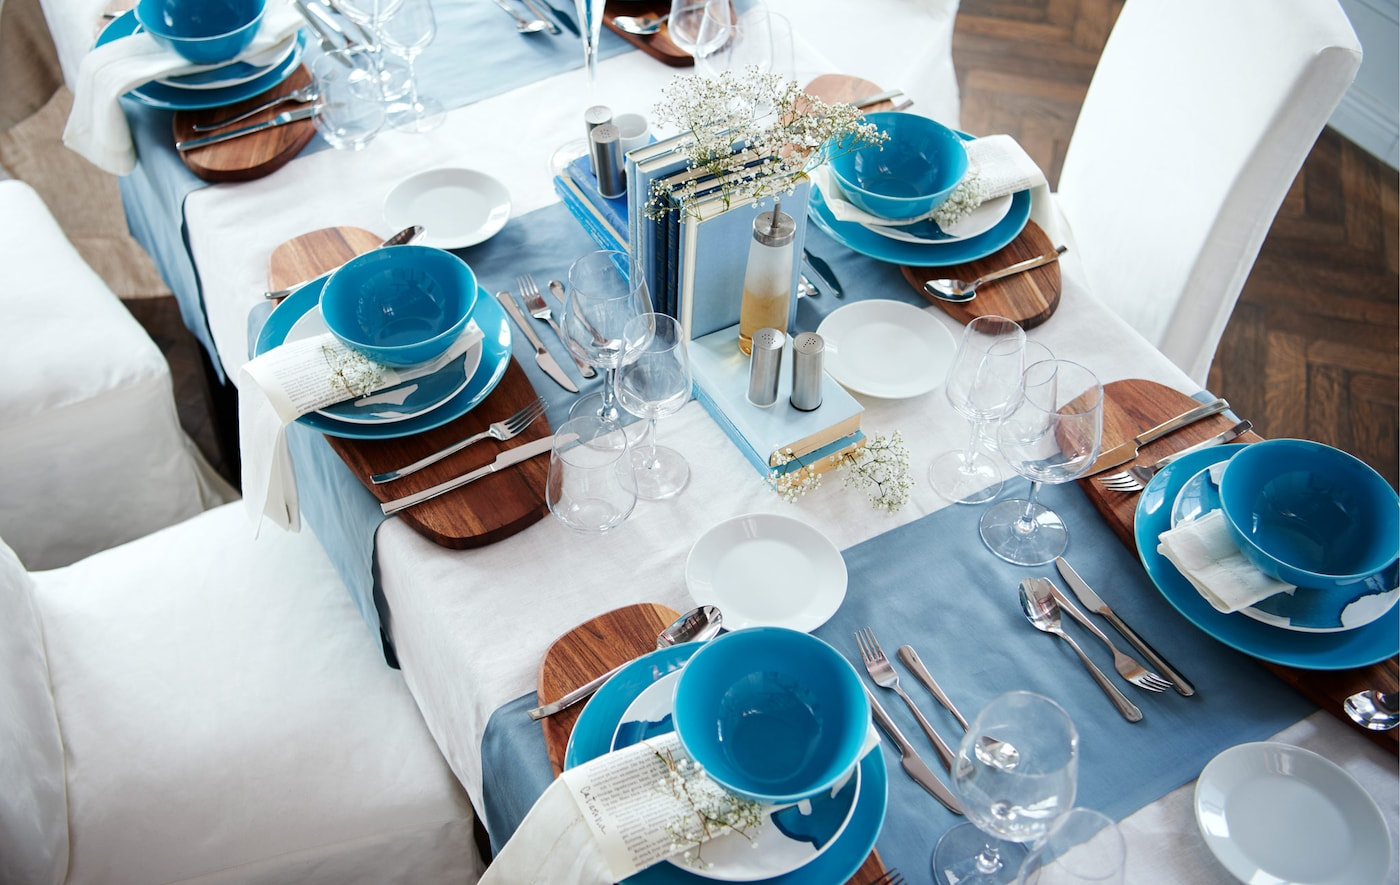 A view from above of a dining table set formally with a white and blue colour scheme.